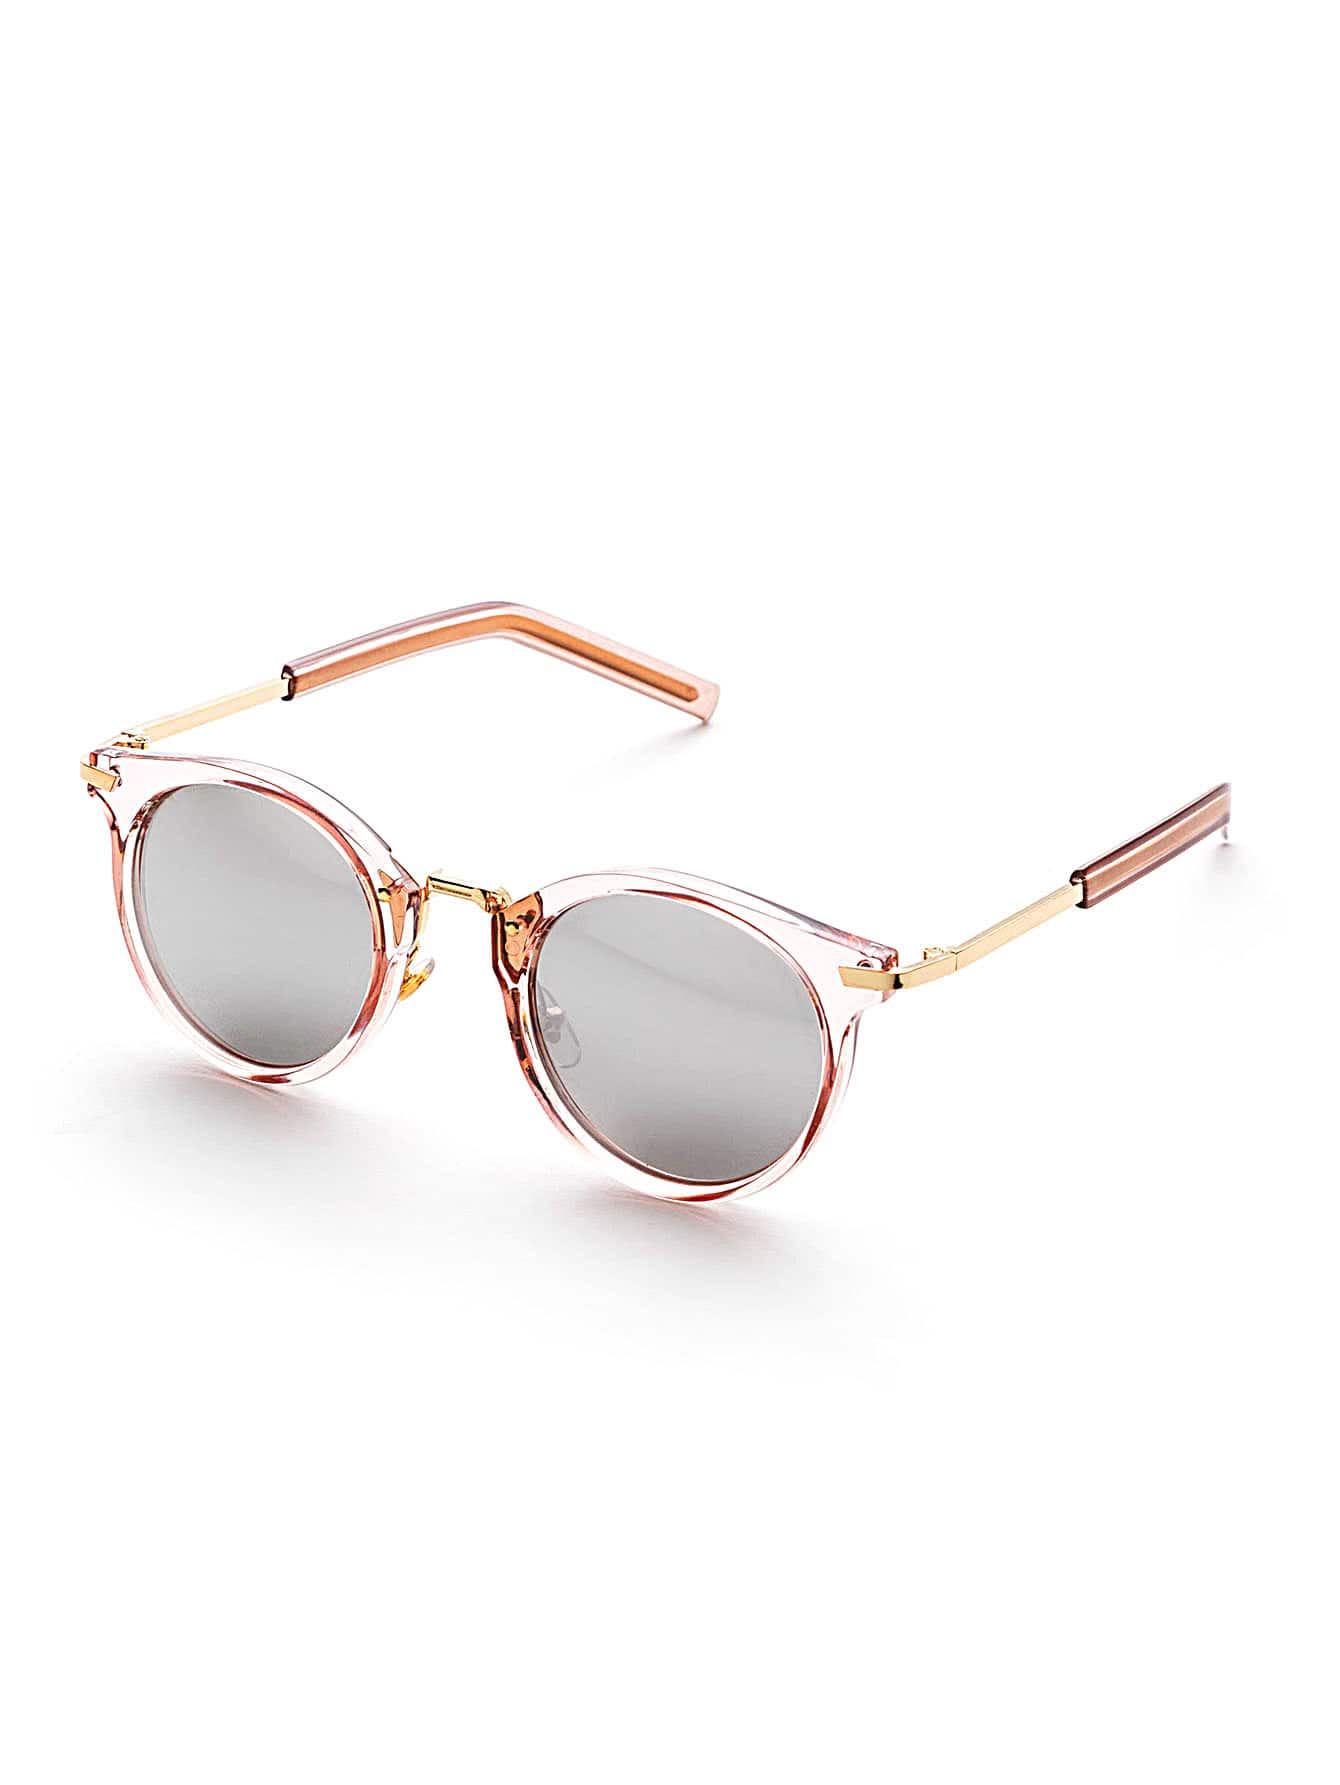 clear frame flat lens round sunglasses sunglass170228301_1 sunglass170228301_1 sunglass170228301_2 sunglass170228301_2